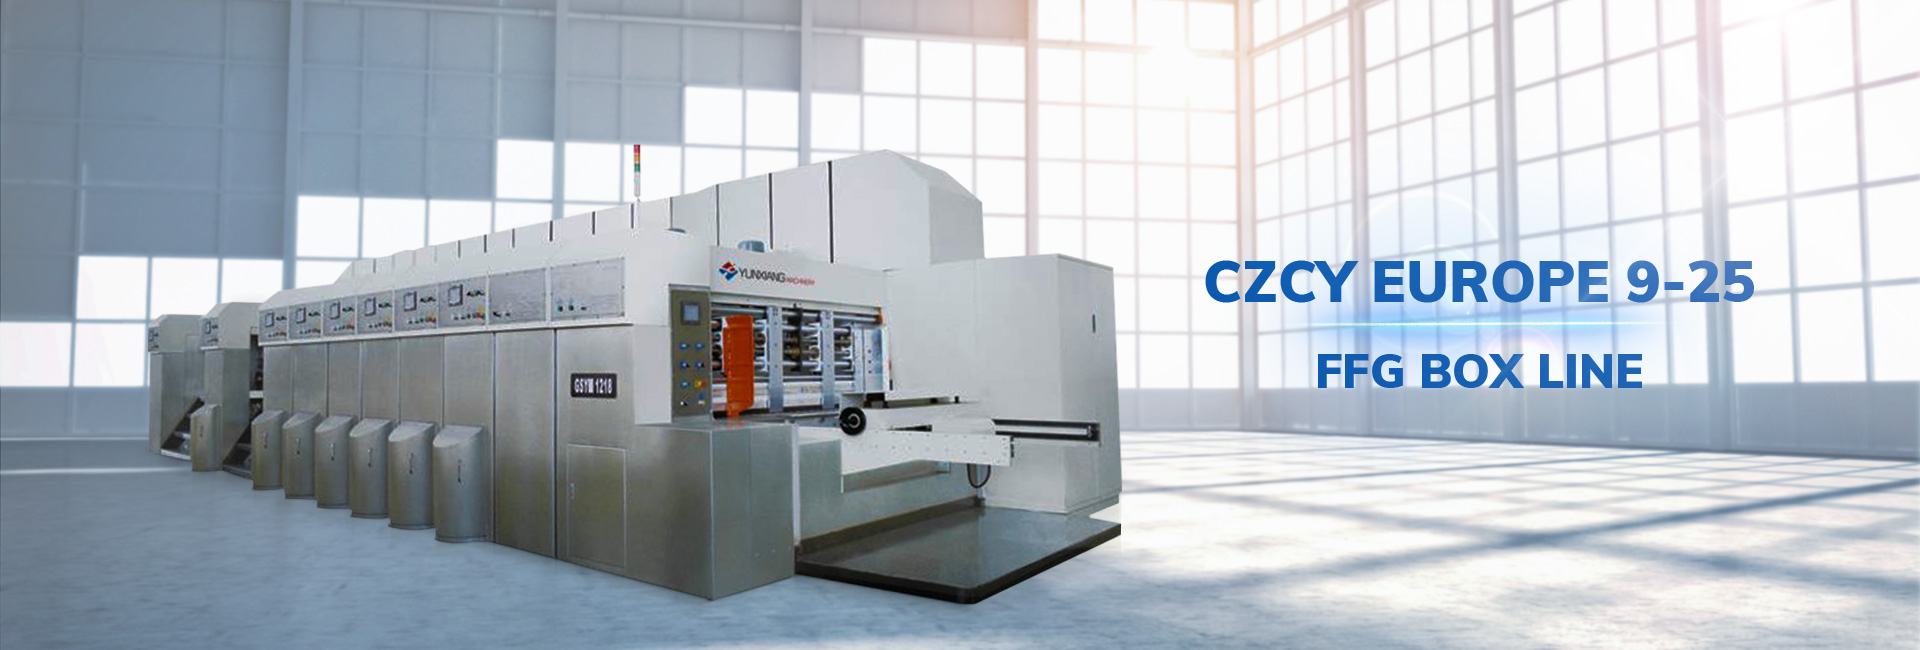 Cangzhou Chengyi картонї Co. Machinery, Ltd